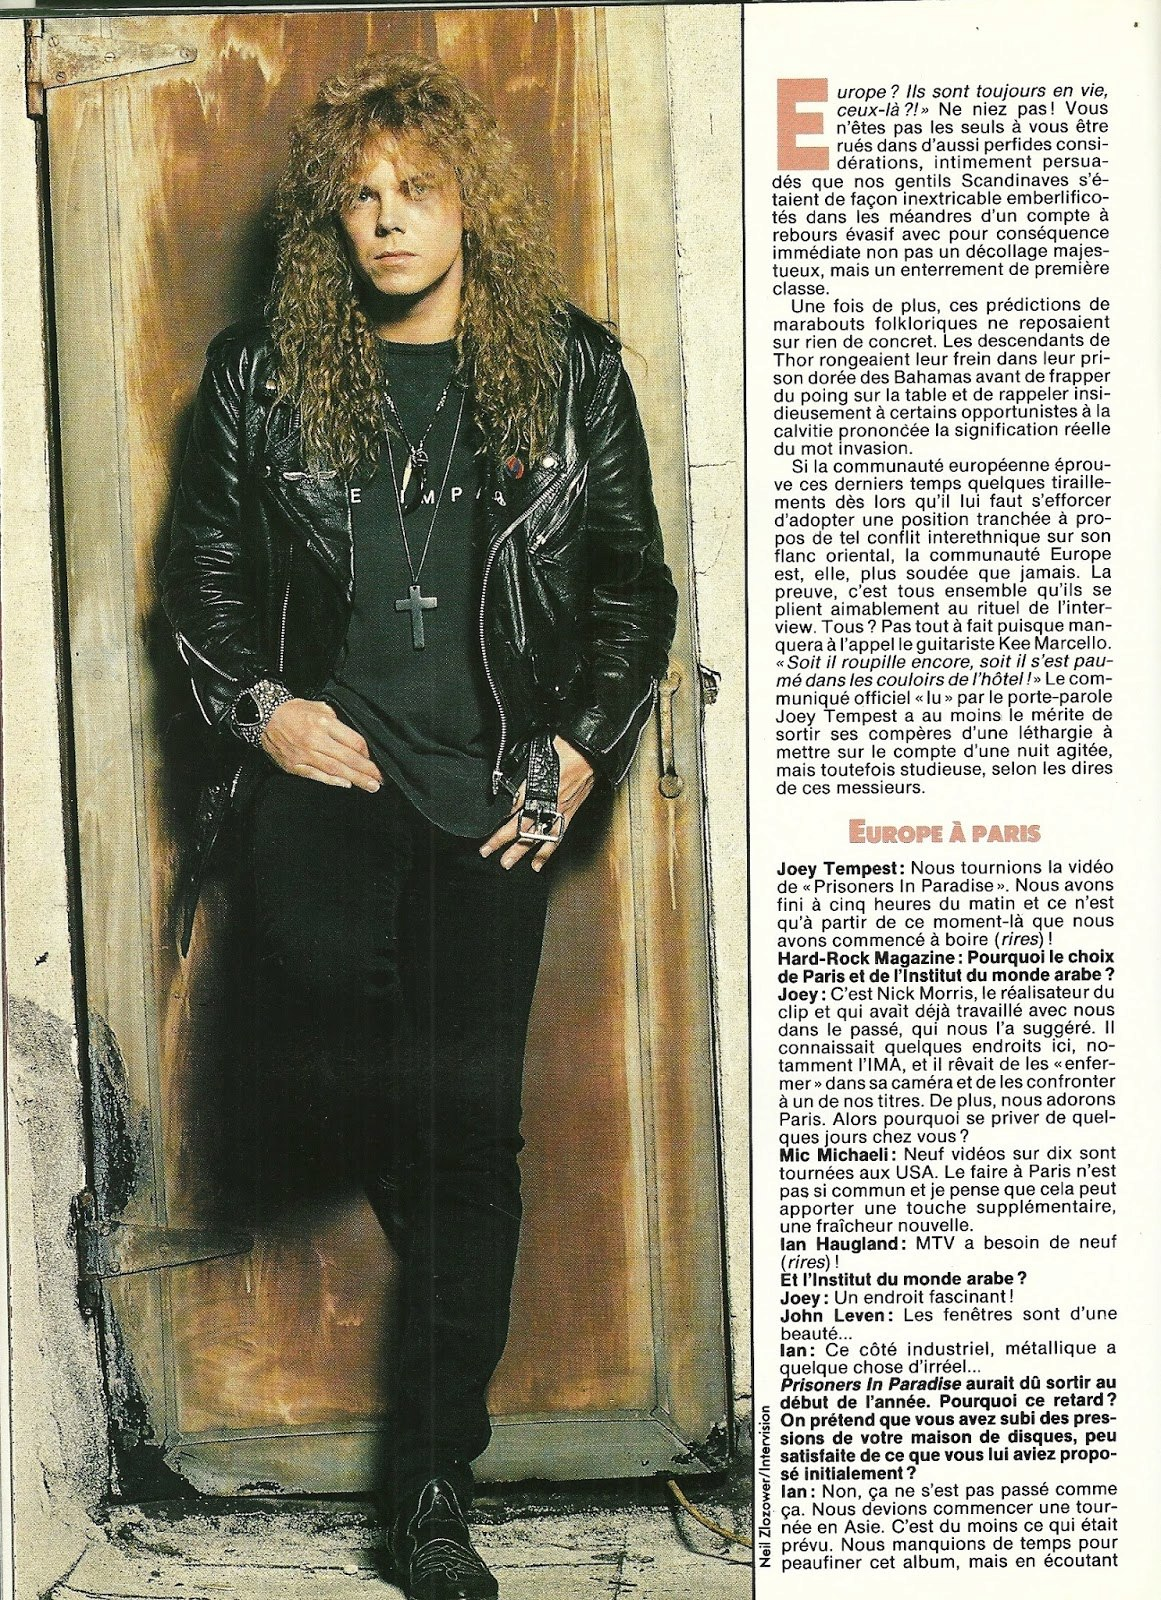 "EUROPE : Paradis non artificiel (""Hard Rock Magazine"" Novembre 1991) Archive à lire Numzor12"